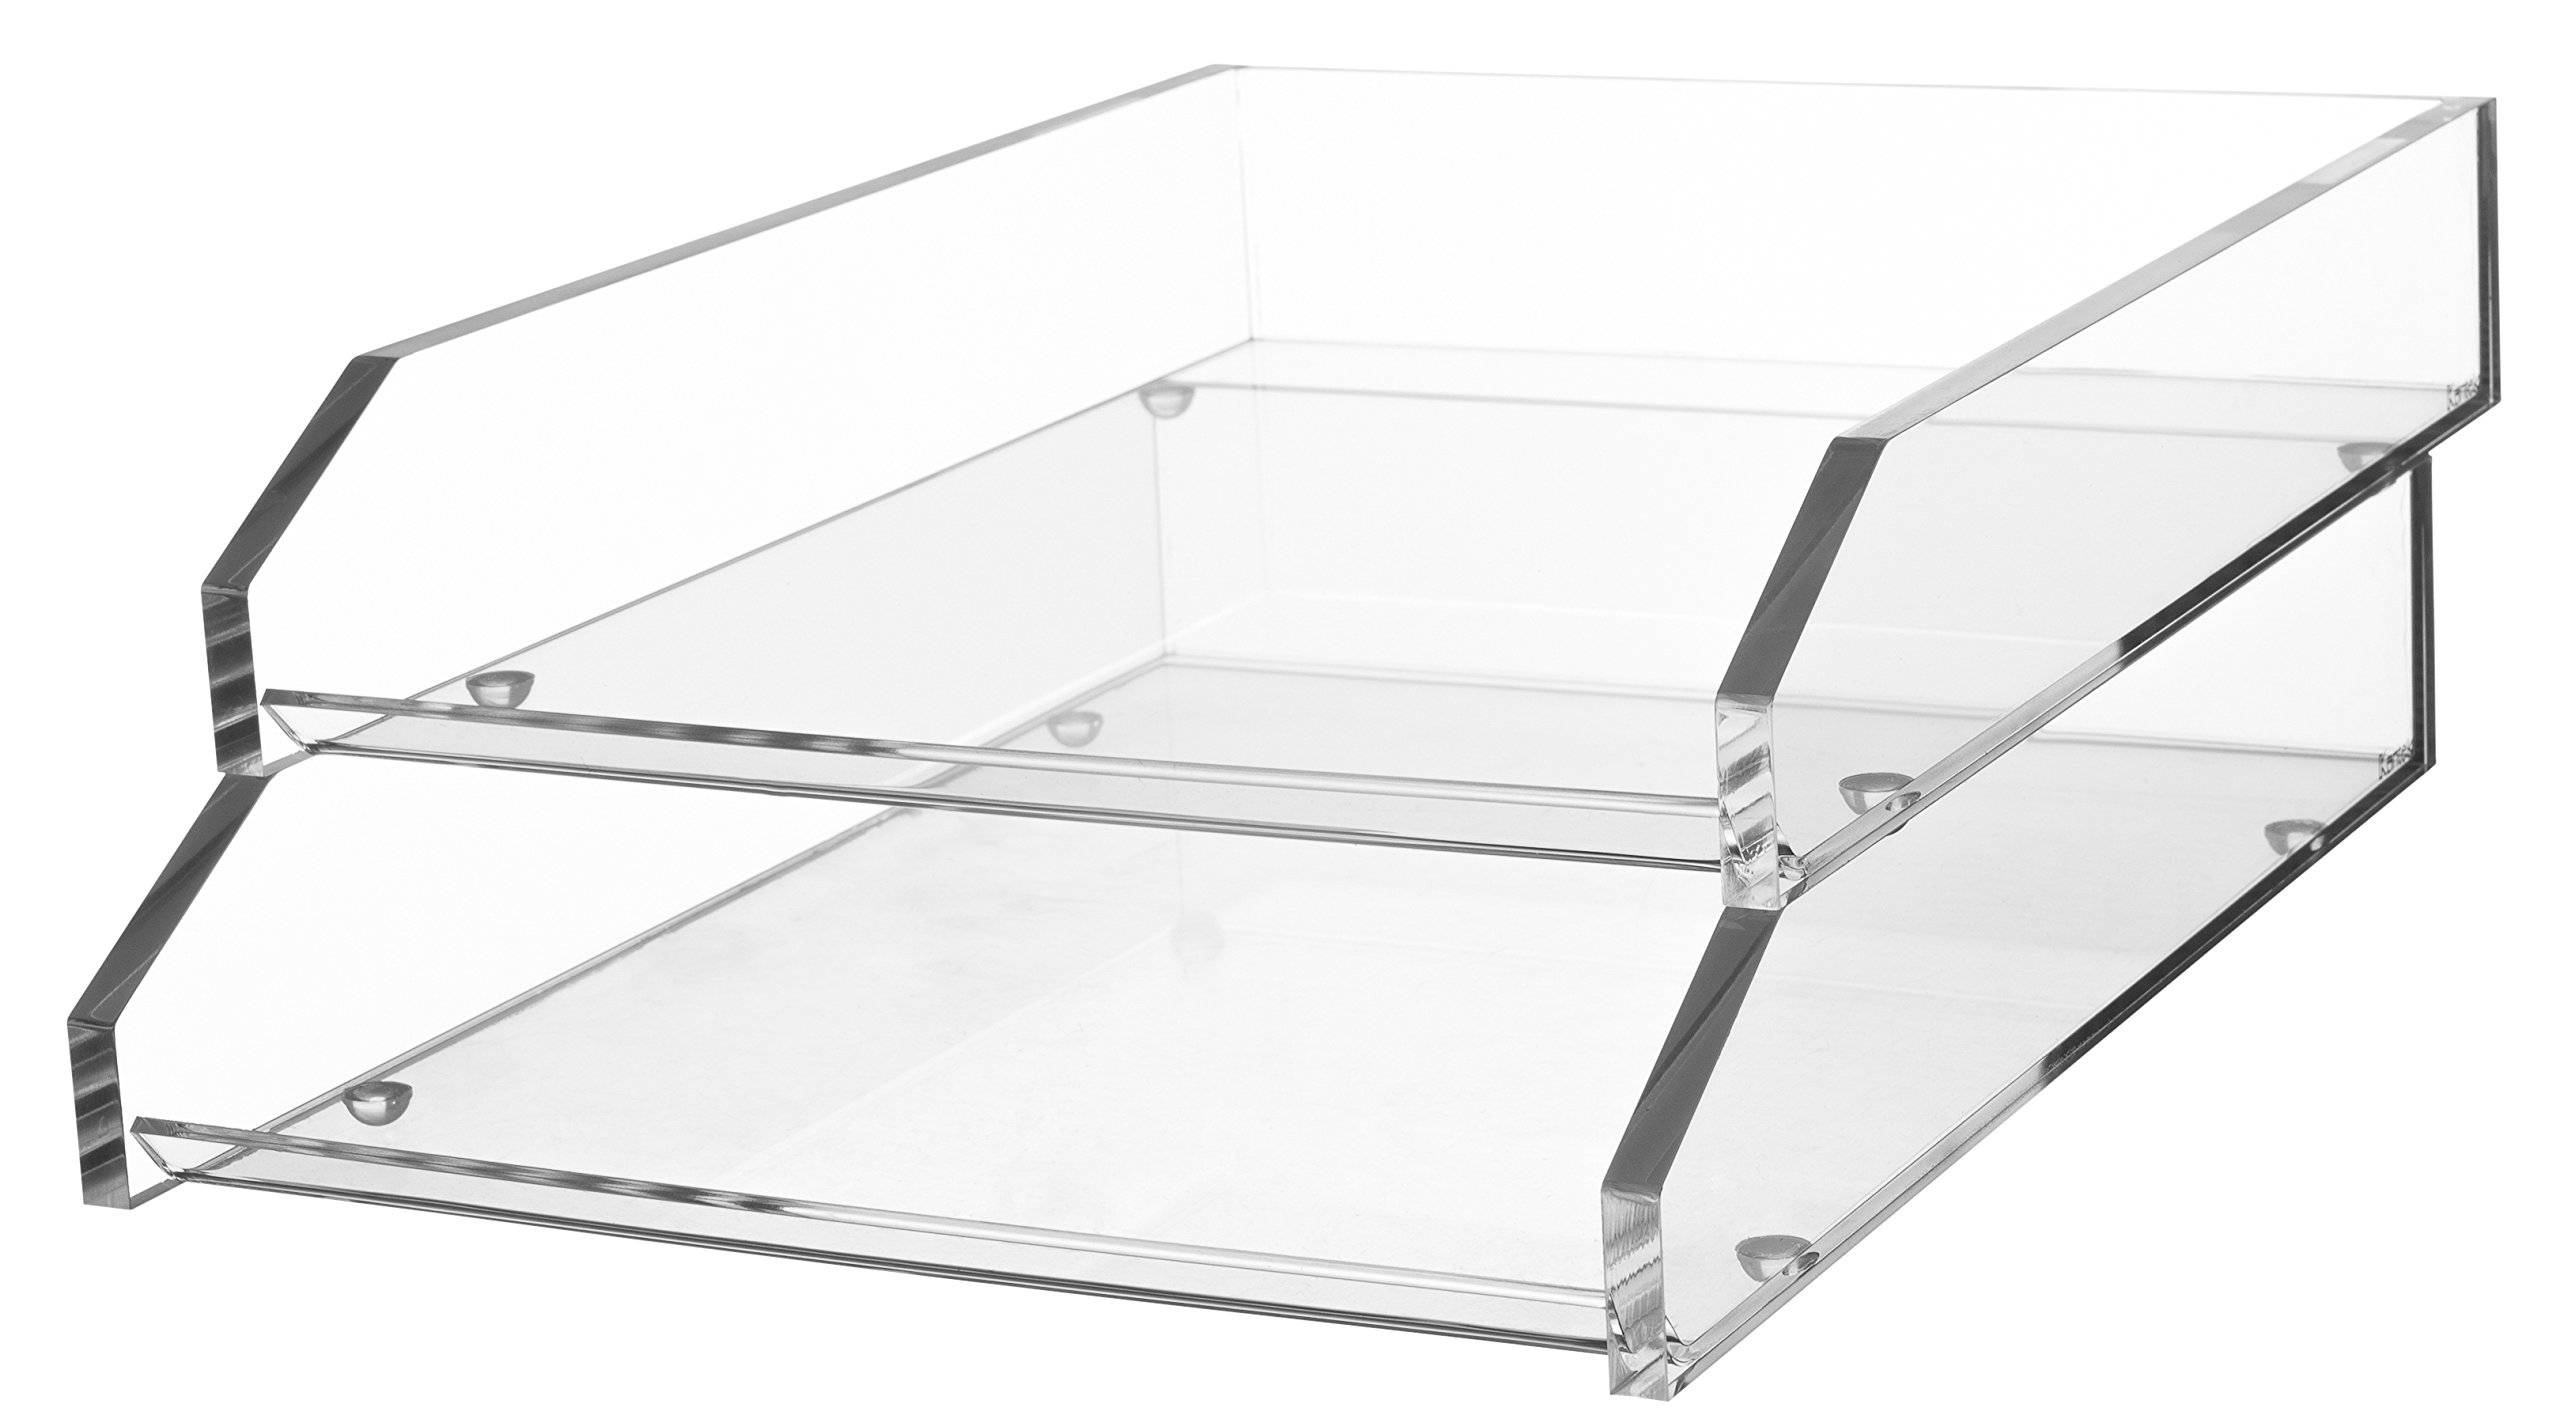 Kantek Acrylic Double Letter Tray, 10.6-Inch Wide x 13.9-Inch Deep x 4.8-Inch High, Clear (AD15) by Kantek